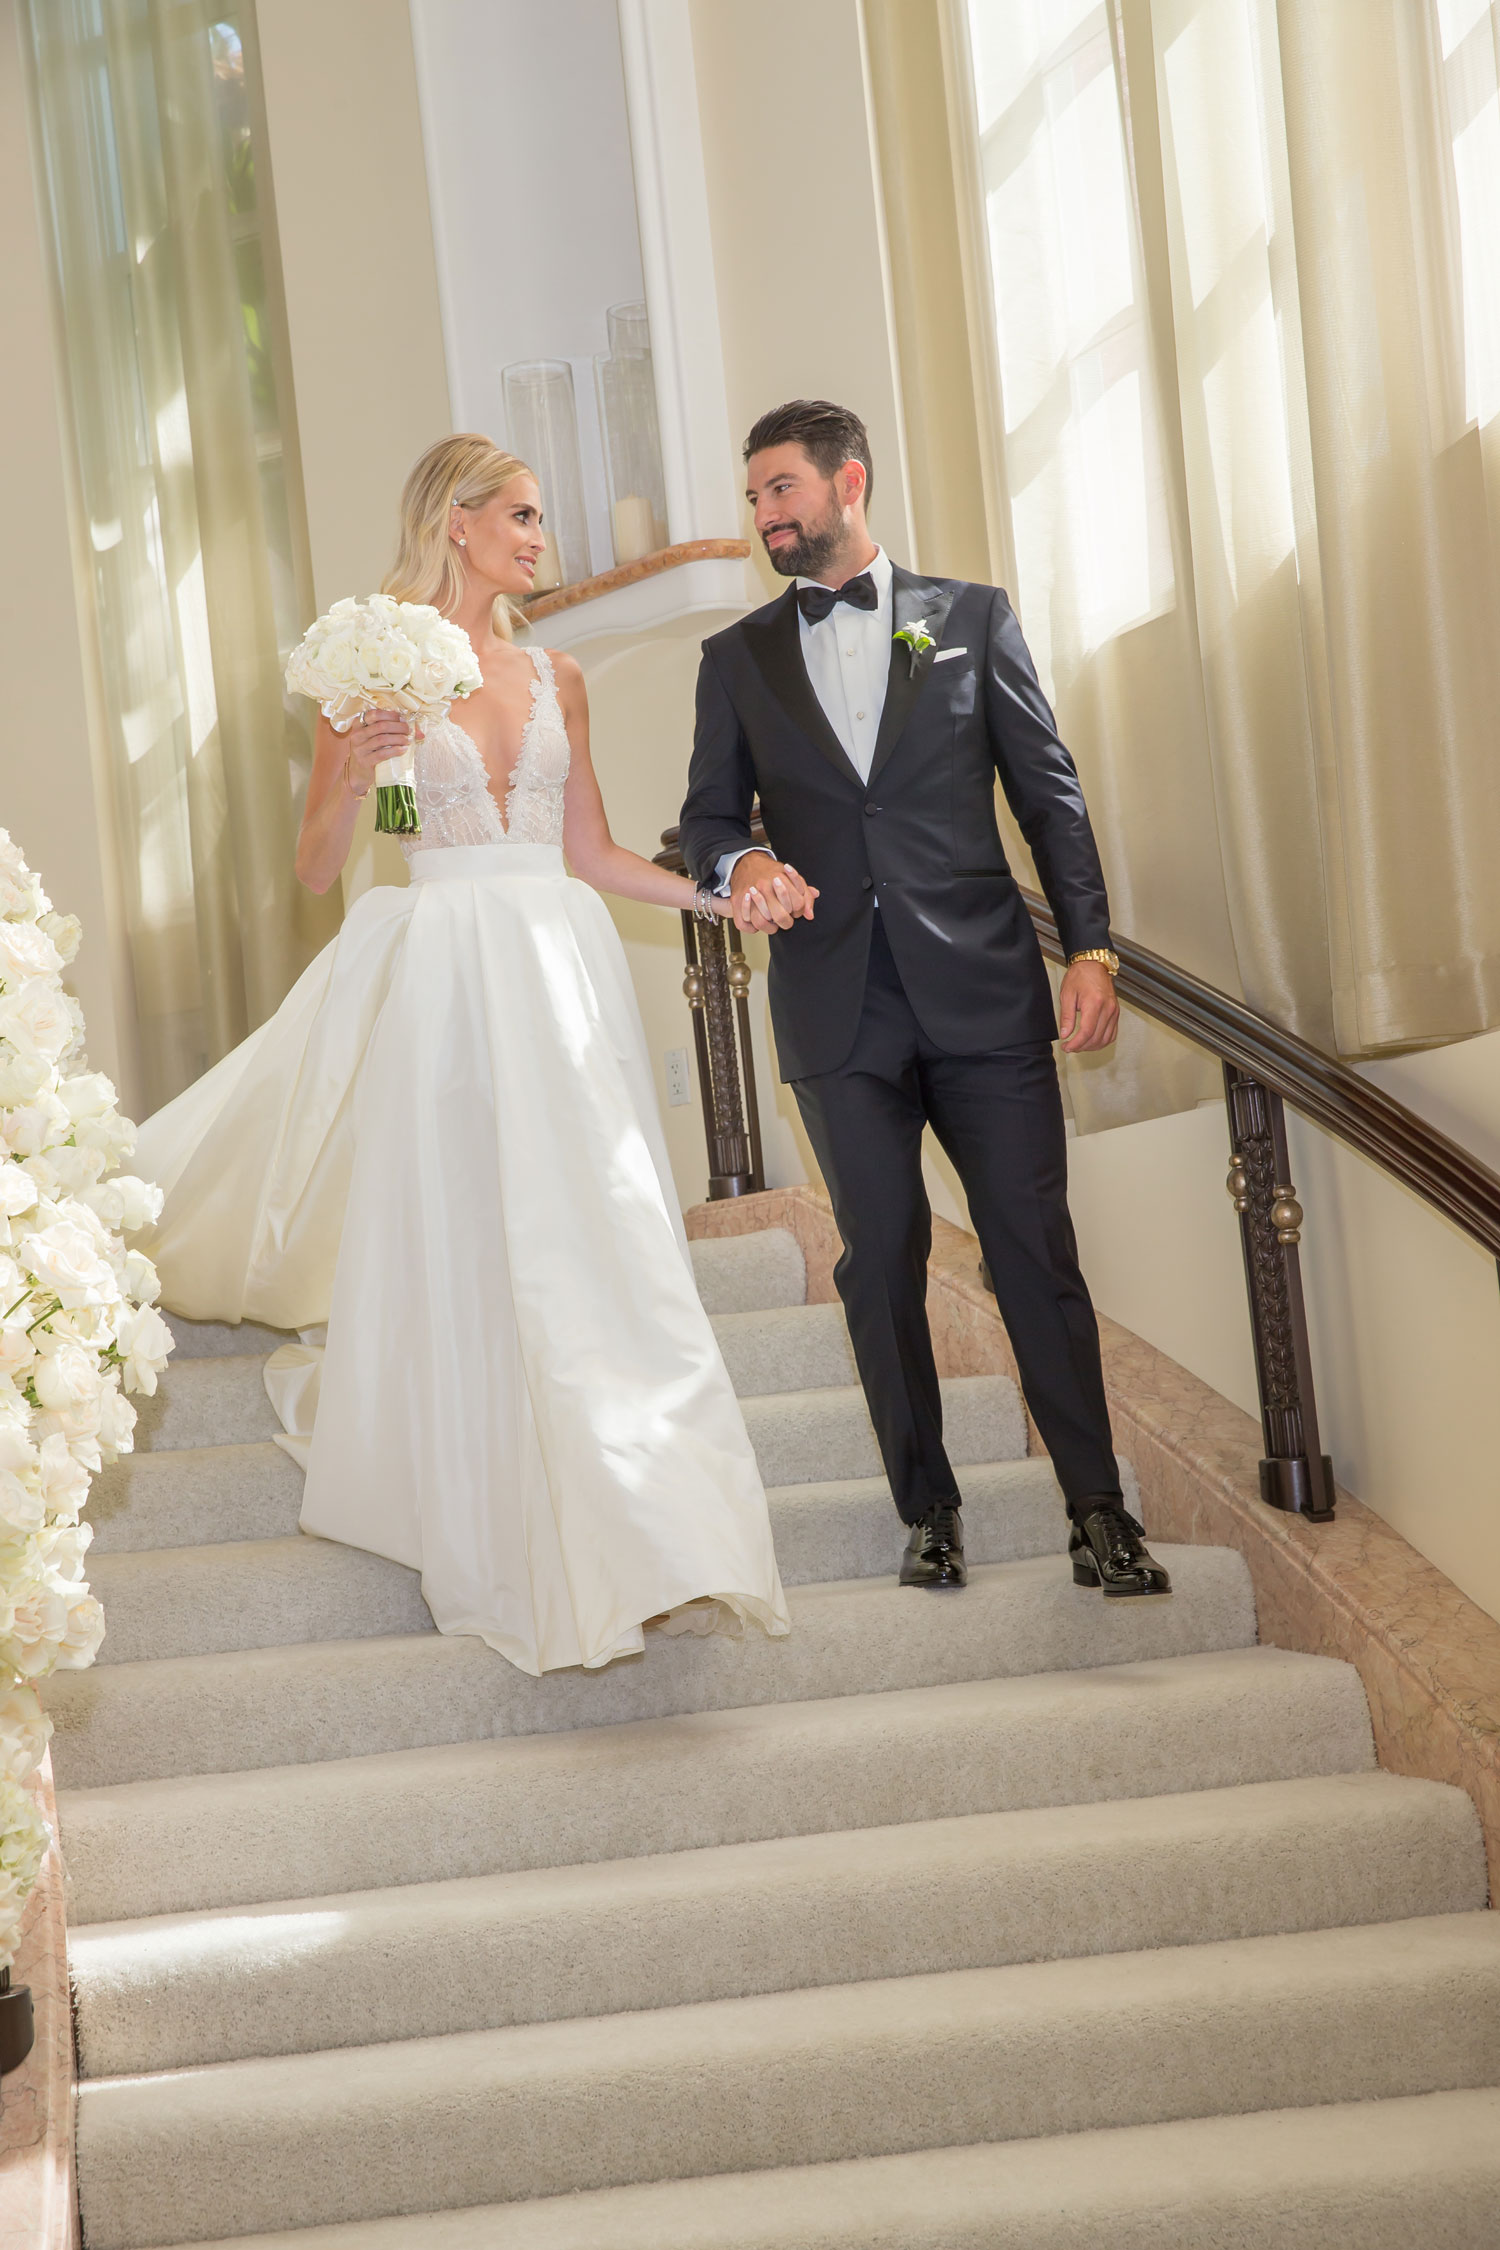 Real bride in Galia Lahav wedding dress plunging v neck ball gown long train walking down stairs